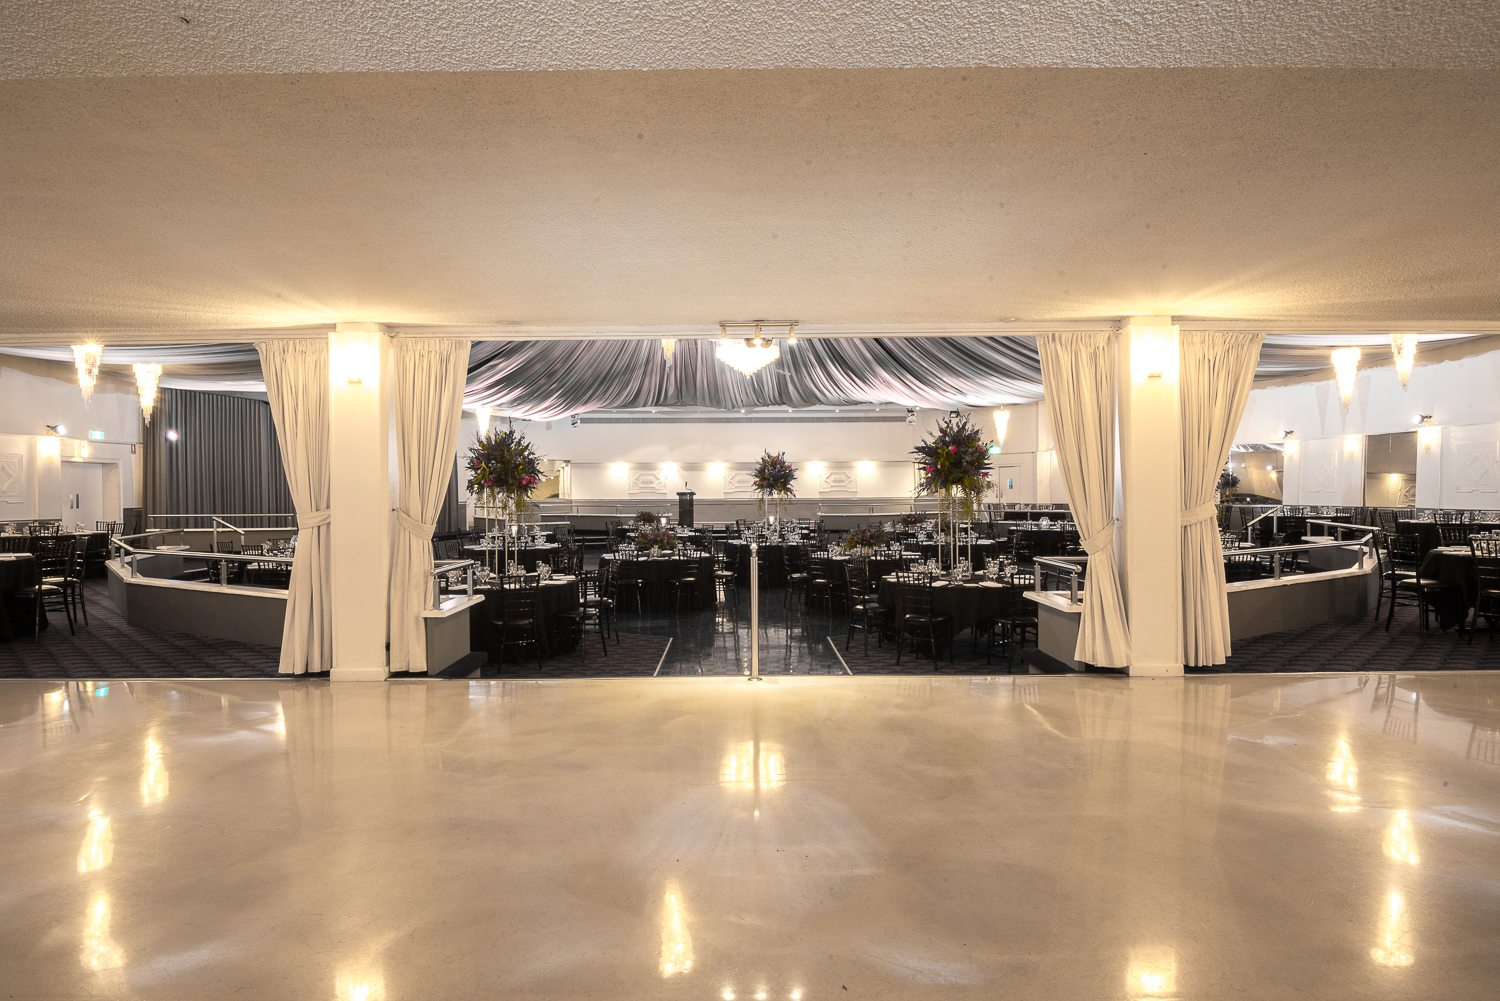 cream curtains bordering ballroom with black draped tables